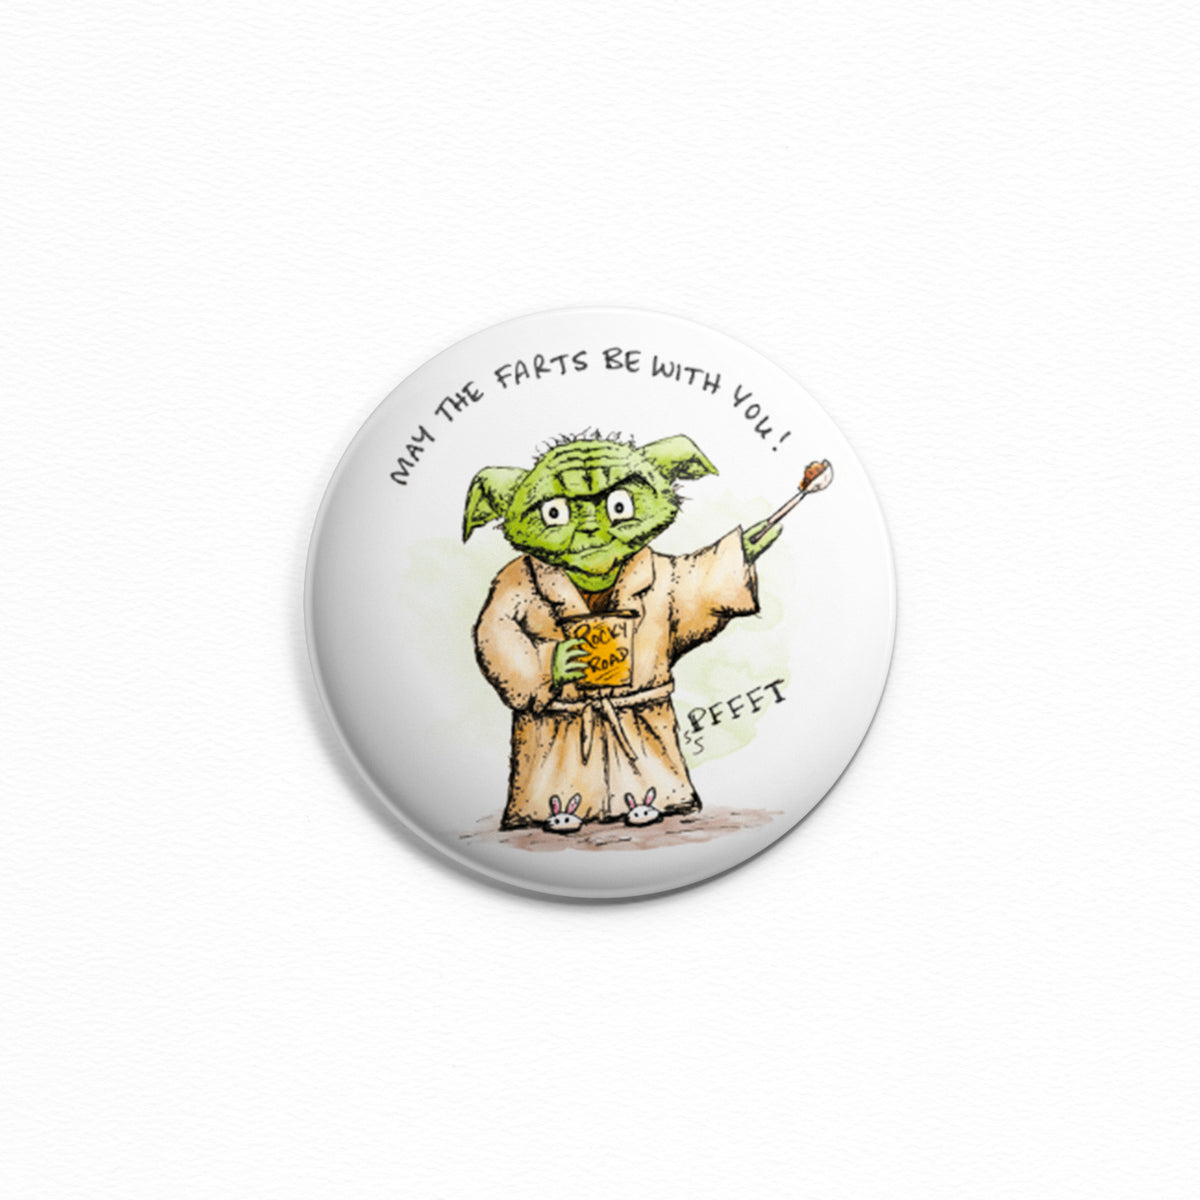 May The Farts With With You - Button or magnet with a drawing of Yoda eating ice cream and tooting! Fart jokes. Lactard.